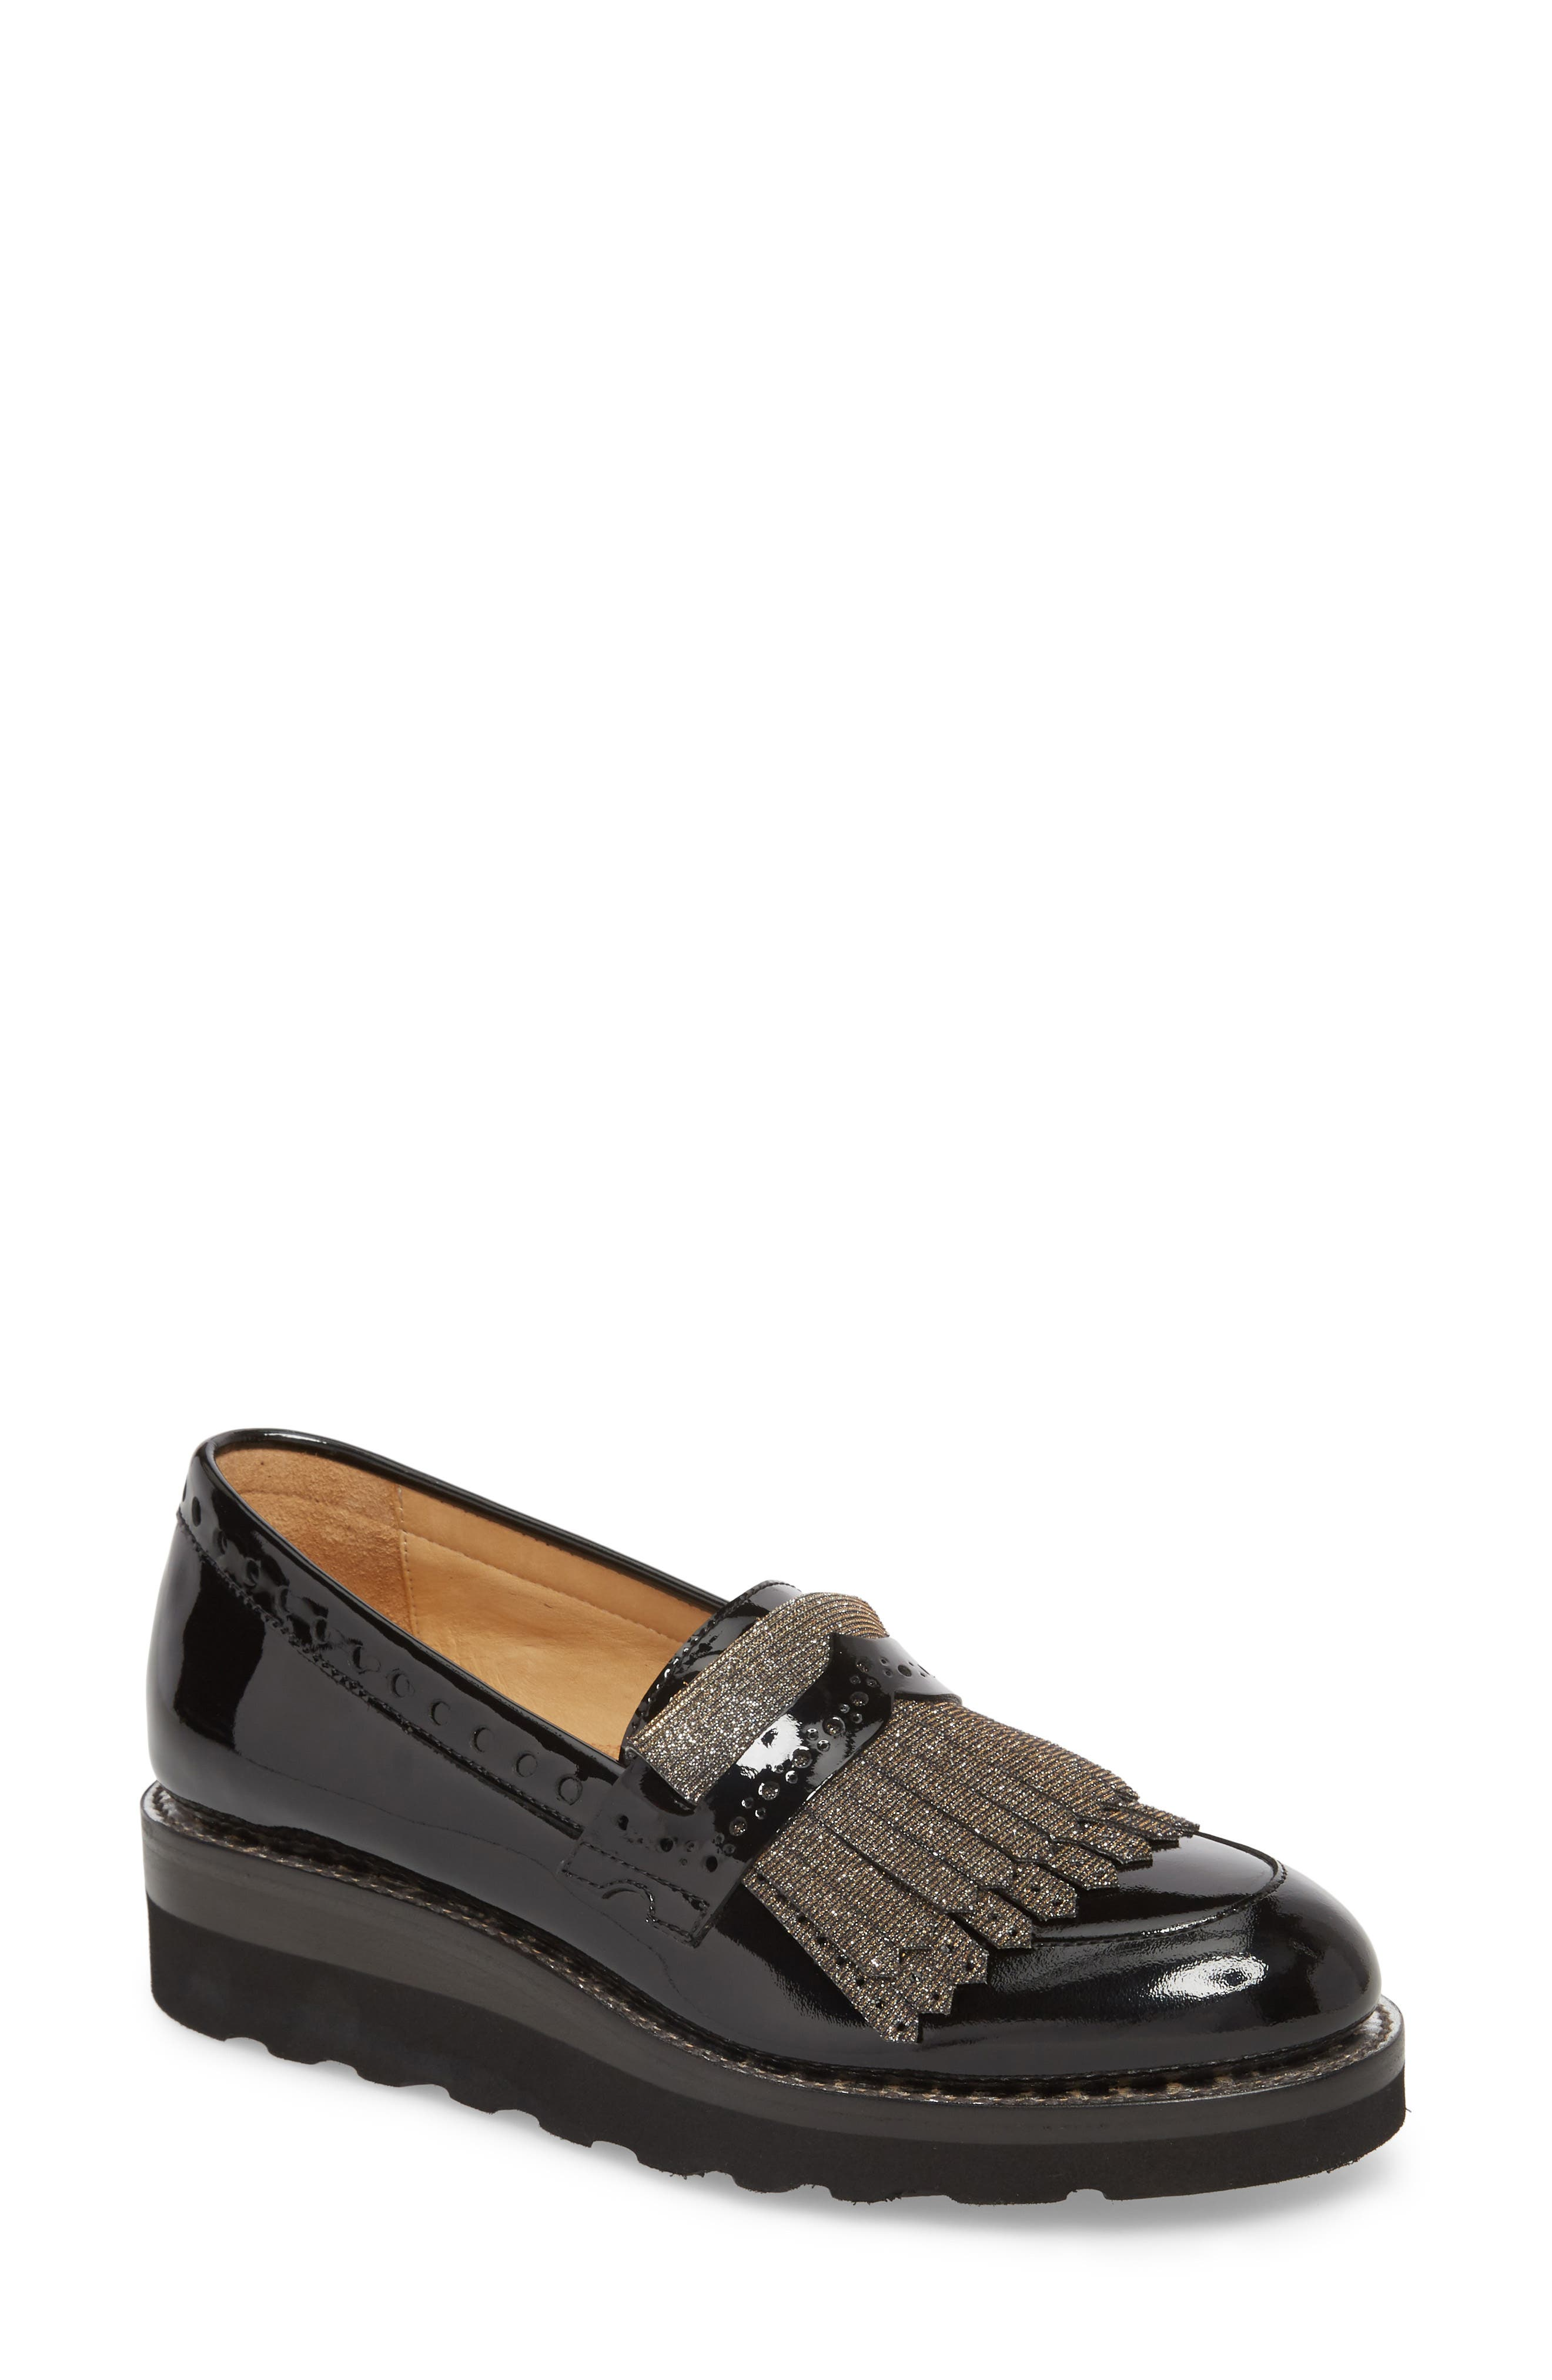 Mr. Pennywise Wedge Loafer,                         Main,                         color, Black Metallic